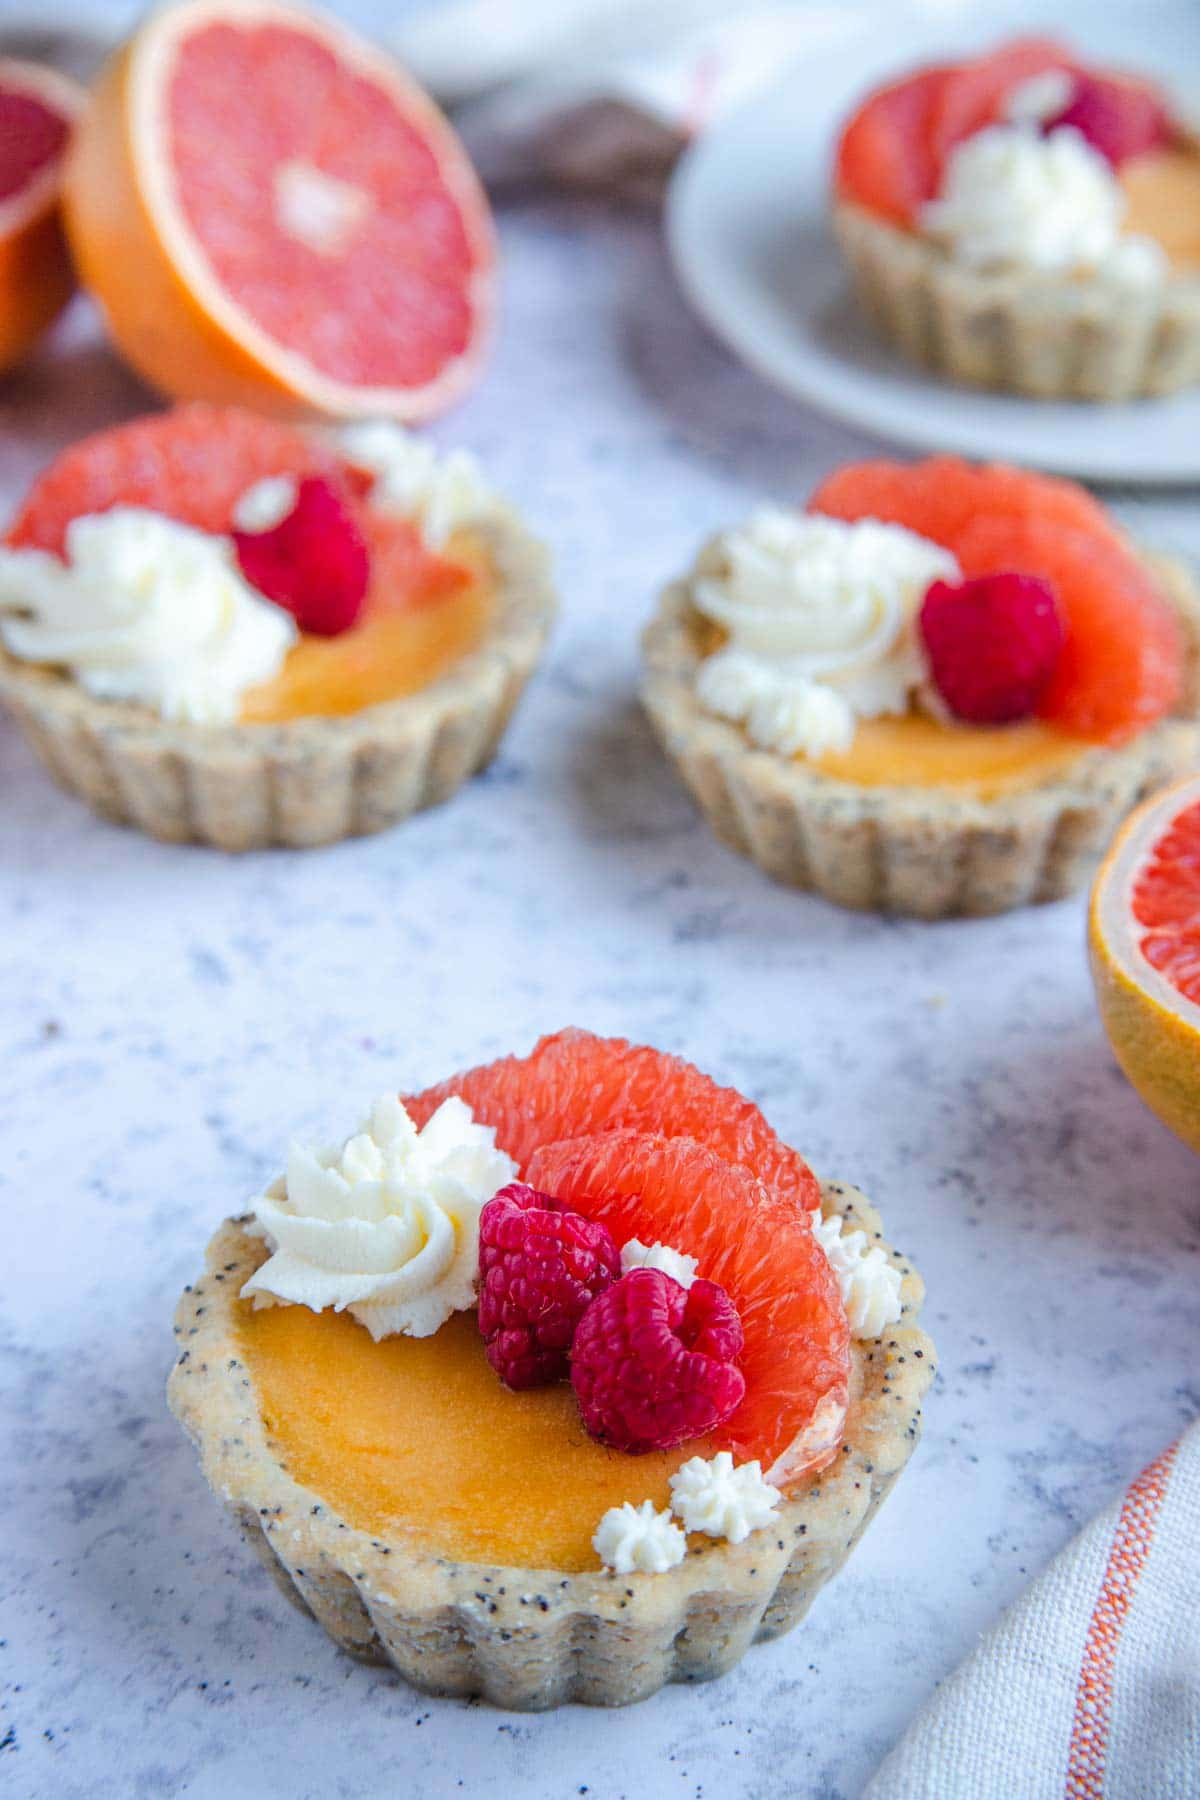 Grapefruit curd mini tarts decorated with whipped cream, fresh grapefruit and fresh raspberries.  Fresh cut grapefruit sit next to the tarts